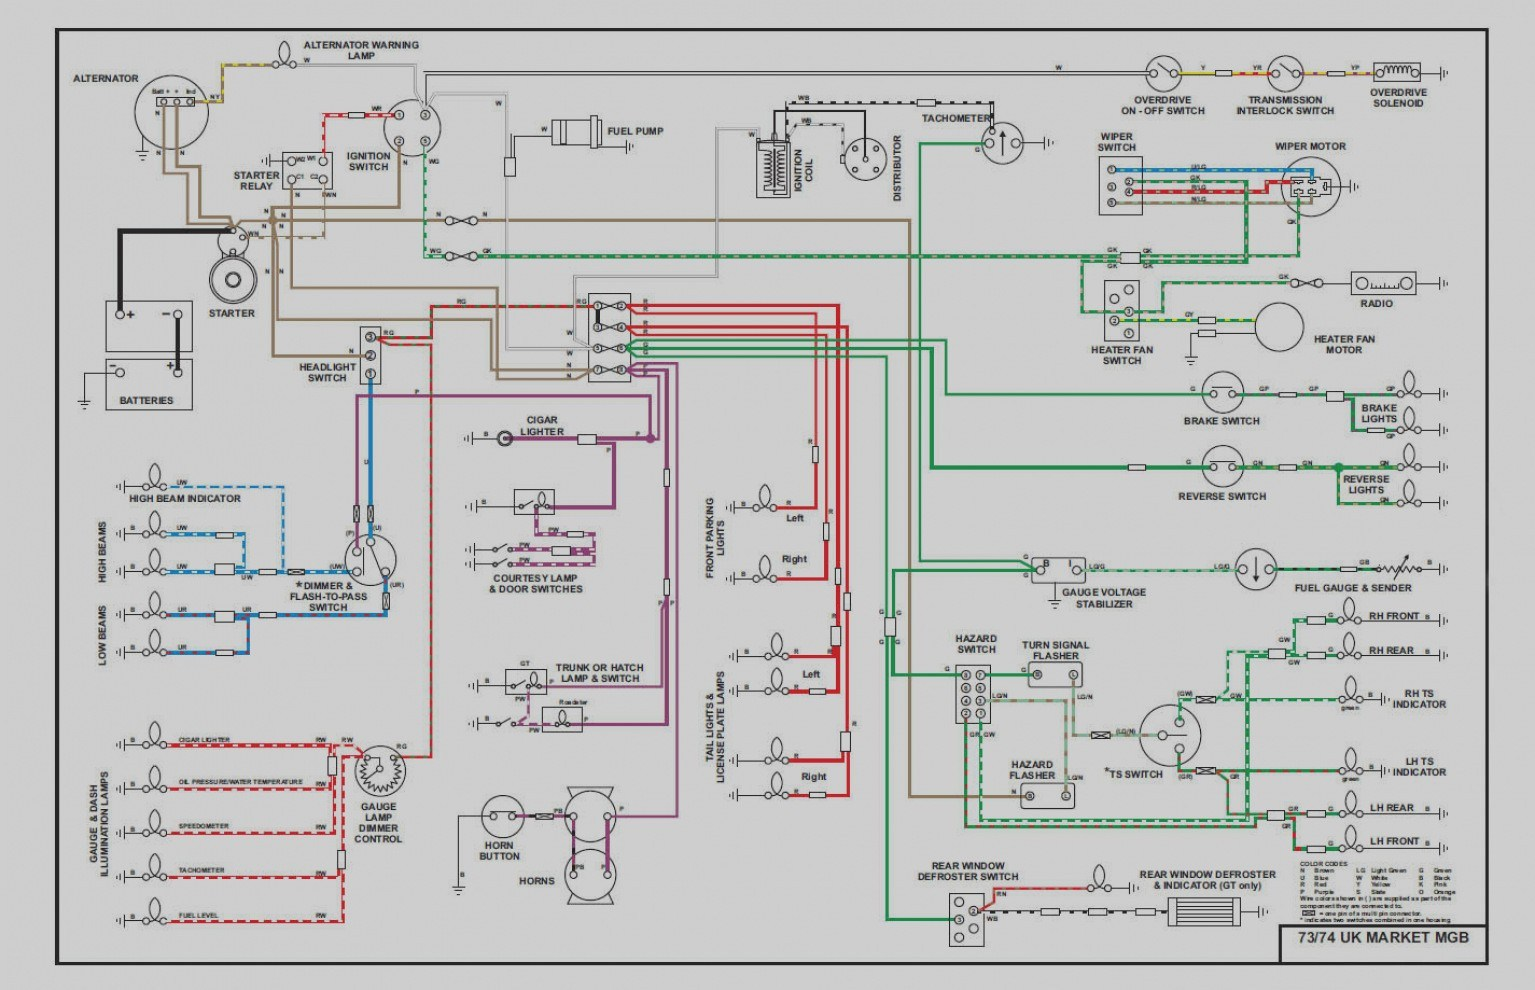 Mgb Fuse Diagram - Wiring Diagram SchematicsWiring Diagram Schematics